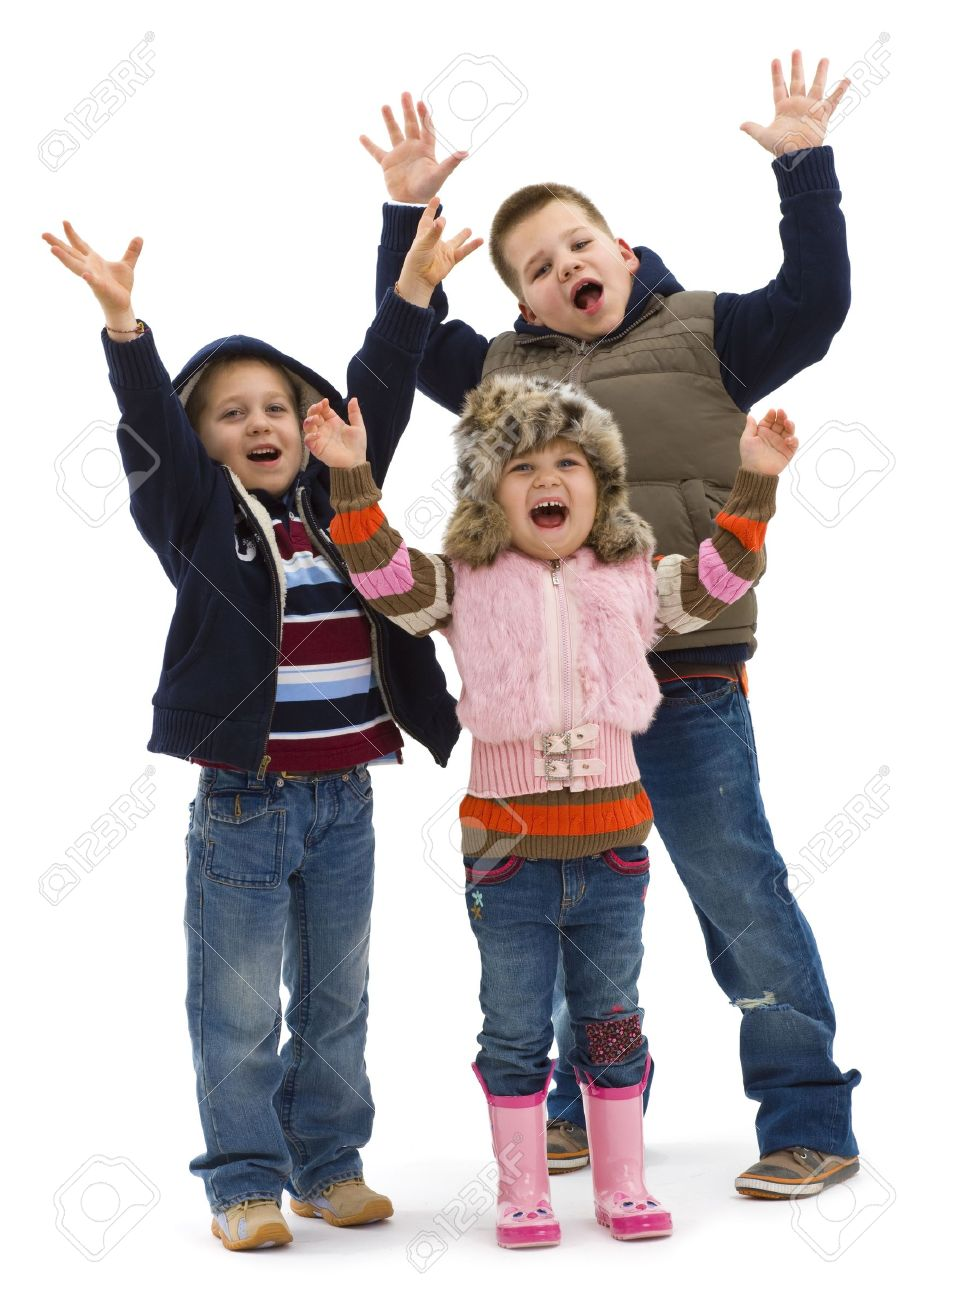 Group of 3 happy children posing together, lauging and waving. Isolated on white background. Stock Photo - 5724662